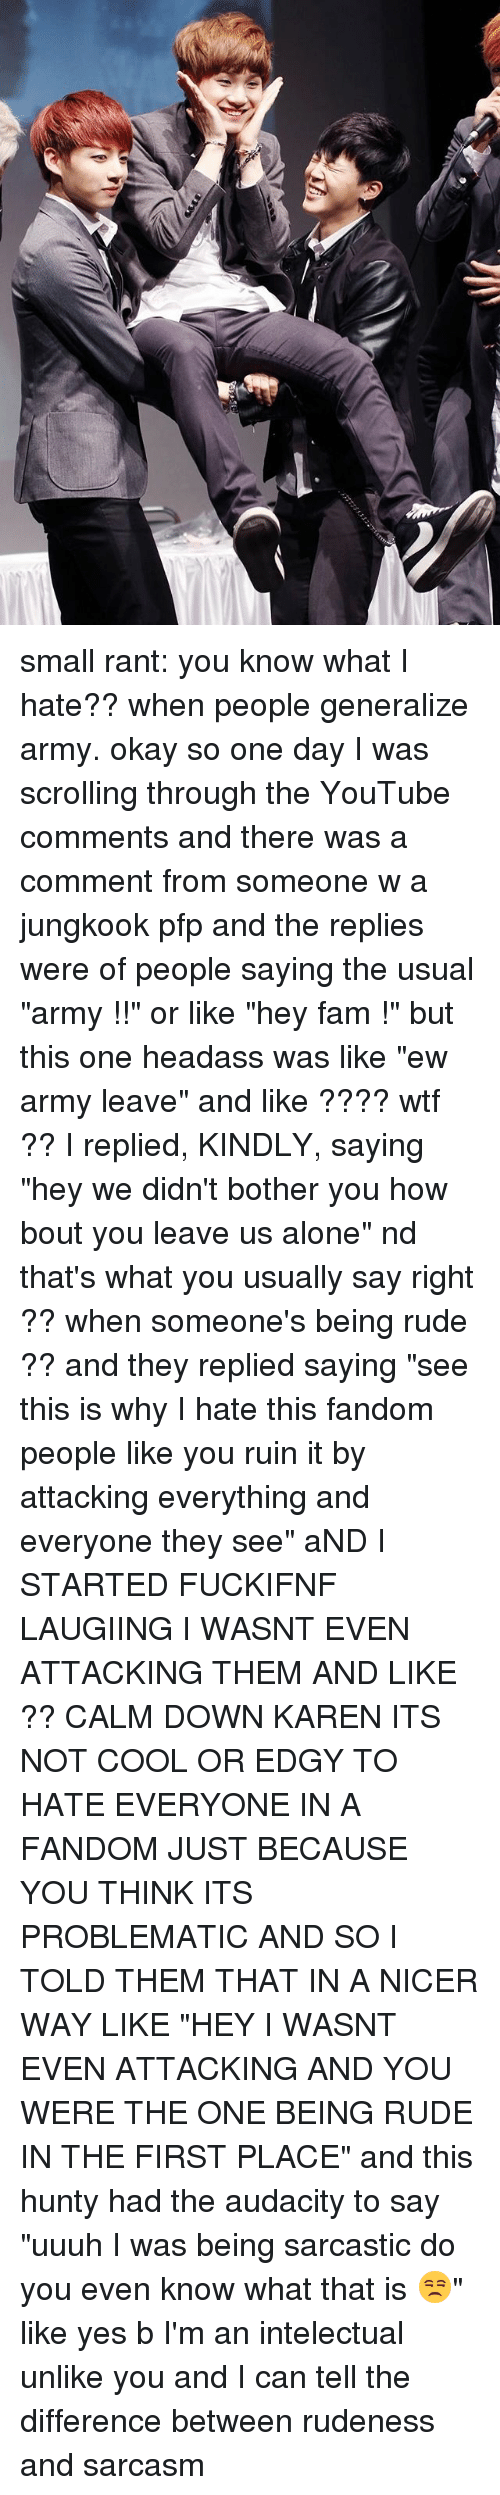 "Bothere: small rant: you know what I hate?? when people generalize army. okay so one day I was scrolling through the YouTube comments and there was a comment from someone w a jungkook pfp and the replies were of people saying the usual ""army !!"" or like ""hey fam !"" but this one headass was like ""ew army leave"" and like ???? wtf ?? I replied, KINDLY, saying ""hey we didn't bother you how bout you leave us alone"" nd that's what you usually say right ?? when someone's being rude ?? and they replied saying ""see this is why I hate this fandom people like you ruin it by attacking everything and everyone they see"" aND I STARTED FUCKIFNF LAUGIING I WASNT EVEN ATTACKING THEM AND LIKE ?? CALM DOWN KAREN ITS NOT COOL OR EDGY TO HATE EVERYONE IN A FANDOM JUST BECAUSE YOU THINK ITS PROBLEMATIC AND SO I TOLD THEM THAT IN A NICER WAY LIKE ""HEY I WASNT EVEN ATTACKING AND YOU WERE THE ONE BEING RUDE IN THE FIRST PLACE"" and this hunty had the audacity to say ""uuuh I was being sarcastic do you even know what that is 😒"" like yes b I'm an intelectual unlike you and I can tell the difference between rudeness and sarcasm"